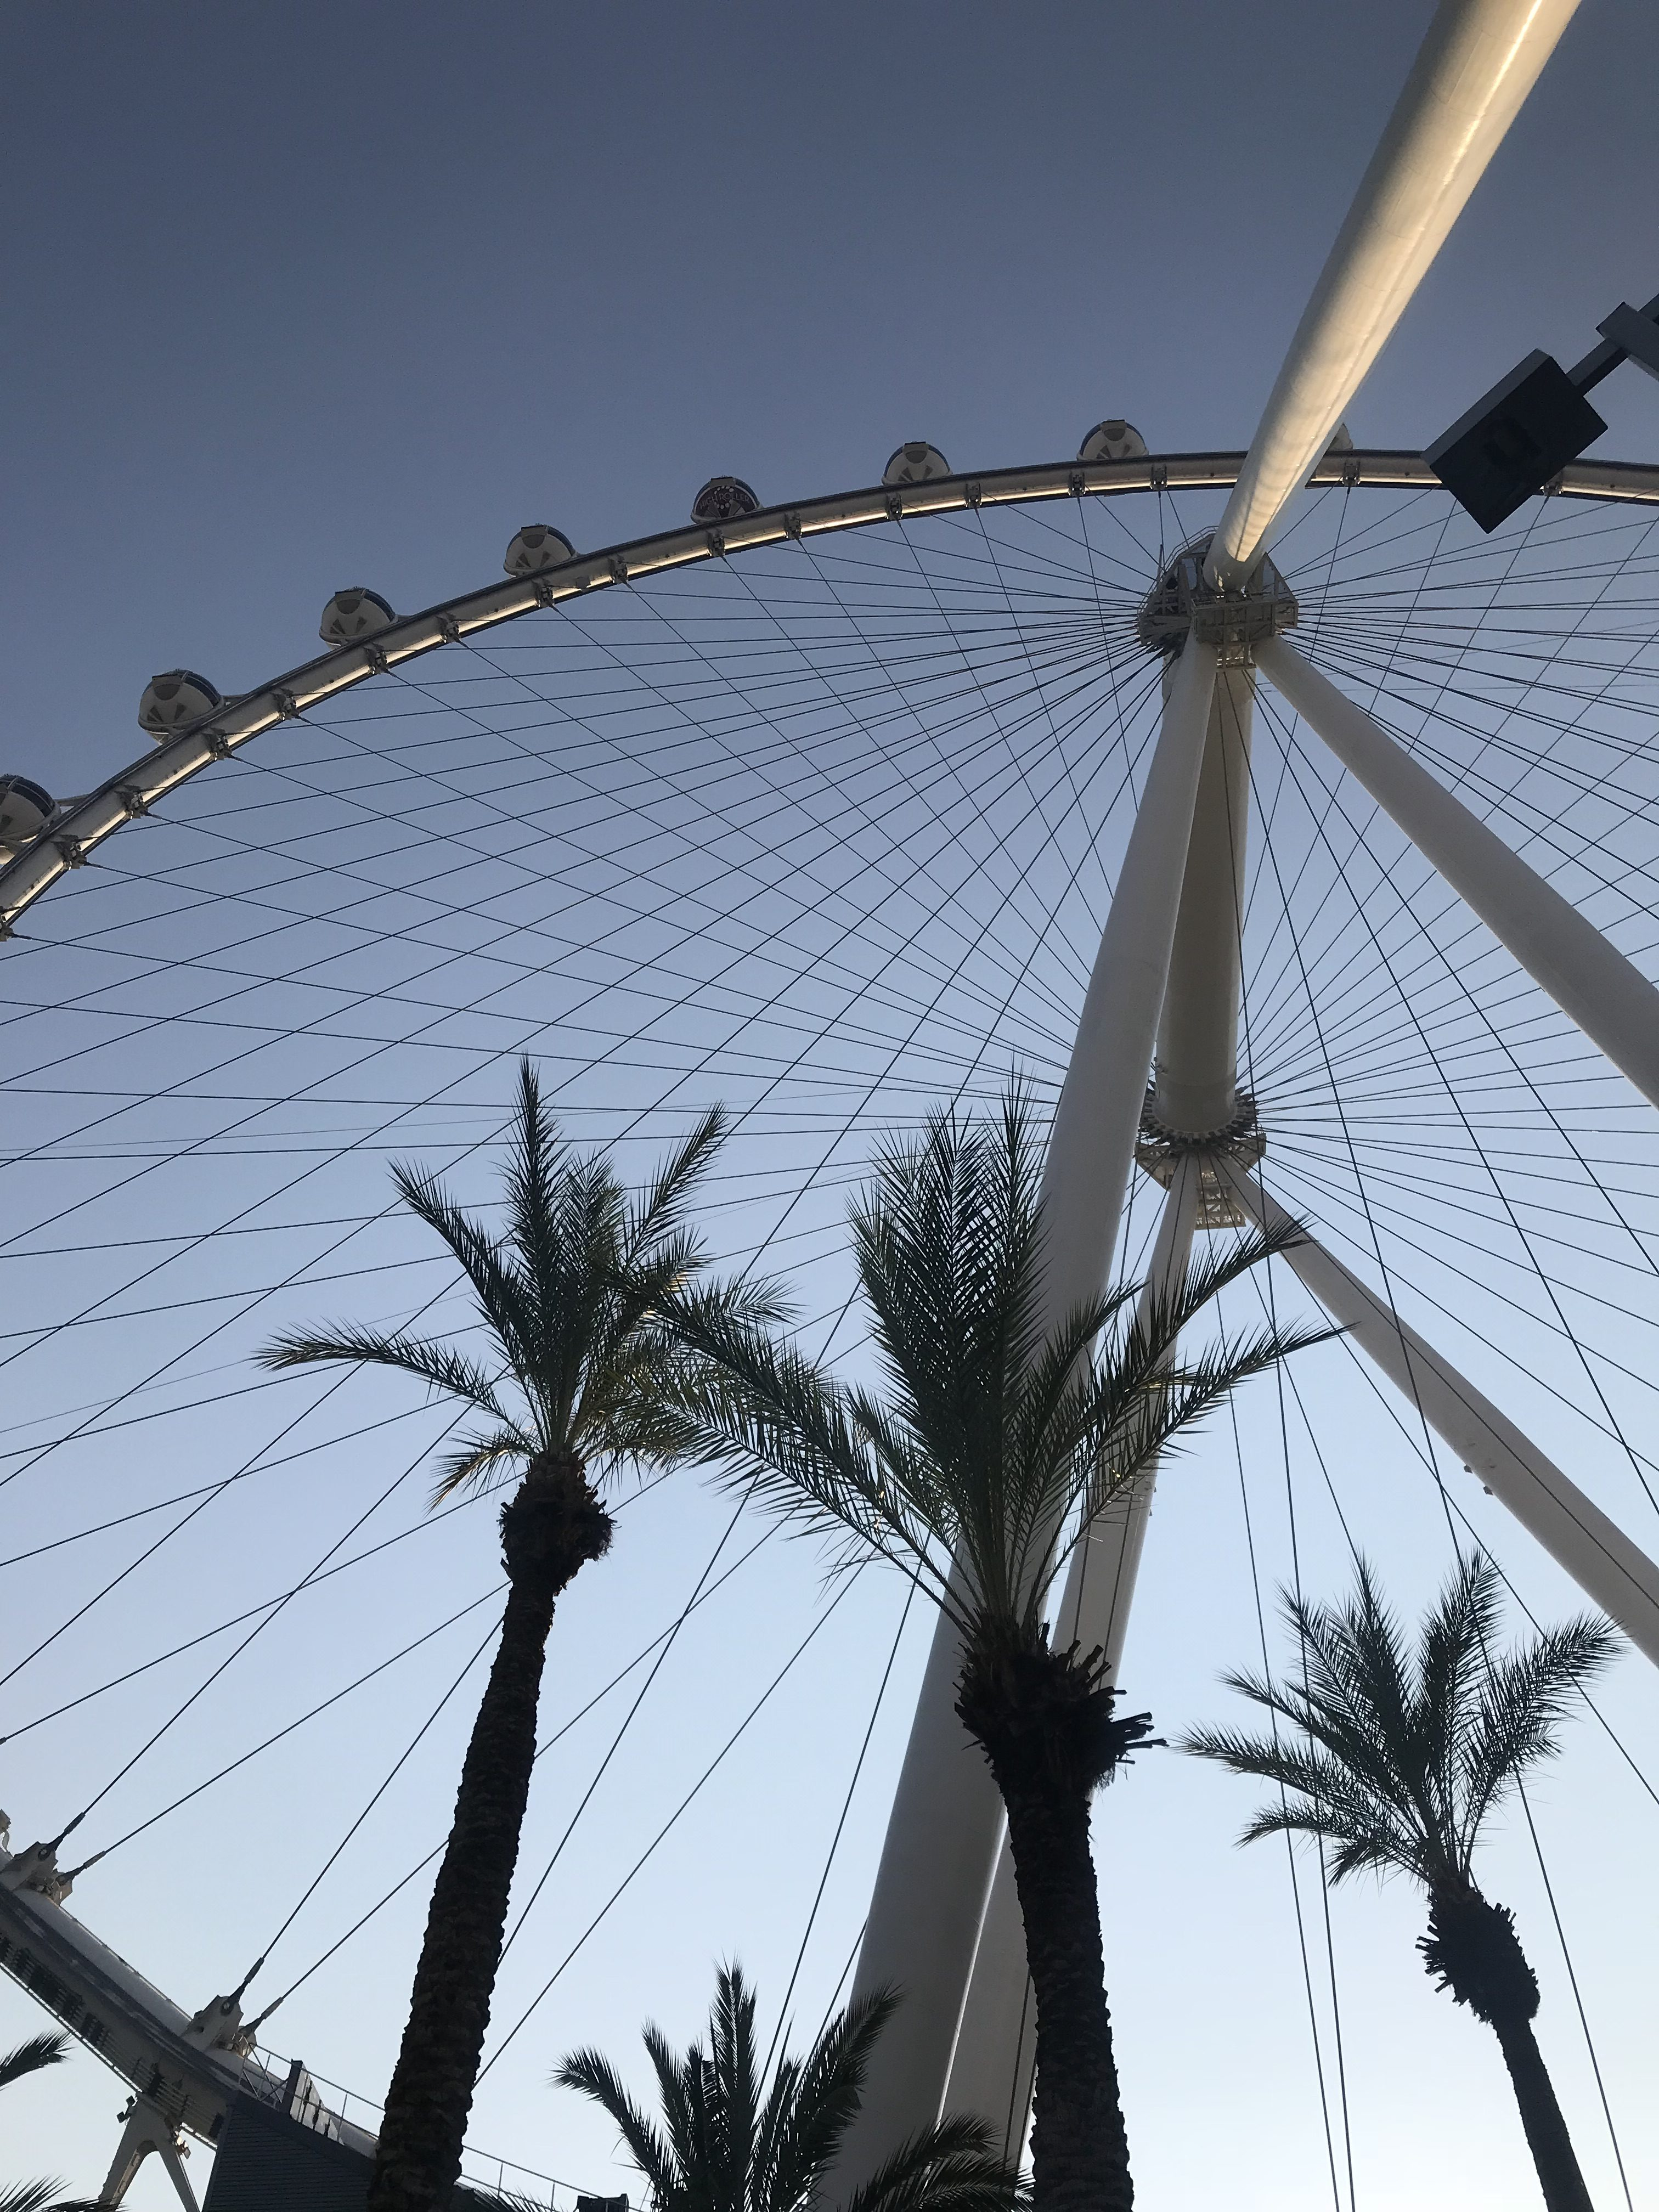 Vegas trip, vacation to vegas, what to do in Vegas Vegas vacation, vegas travel tips